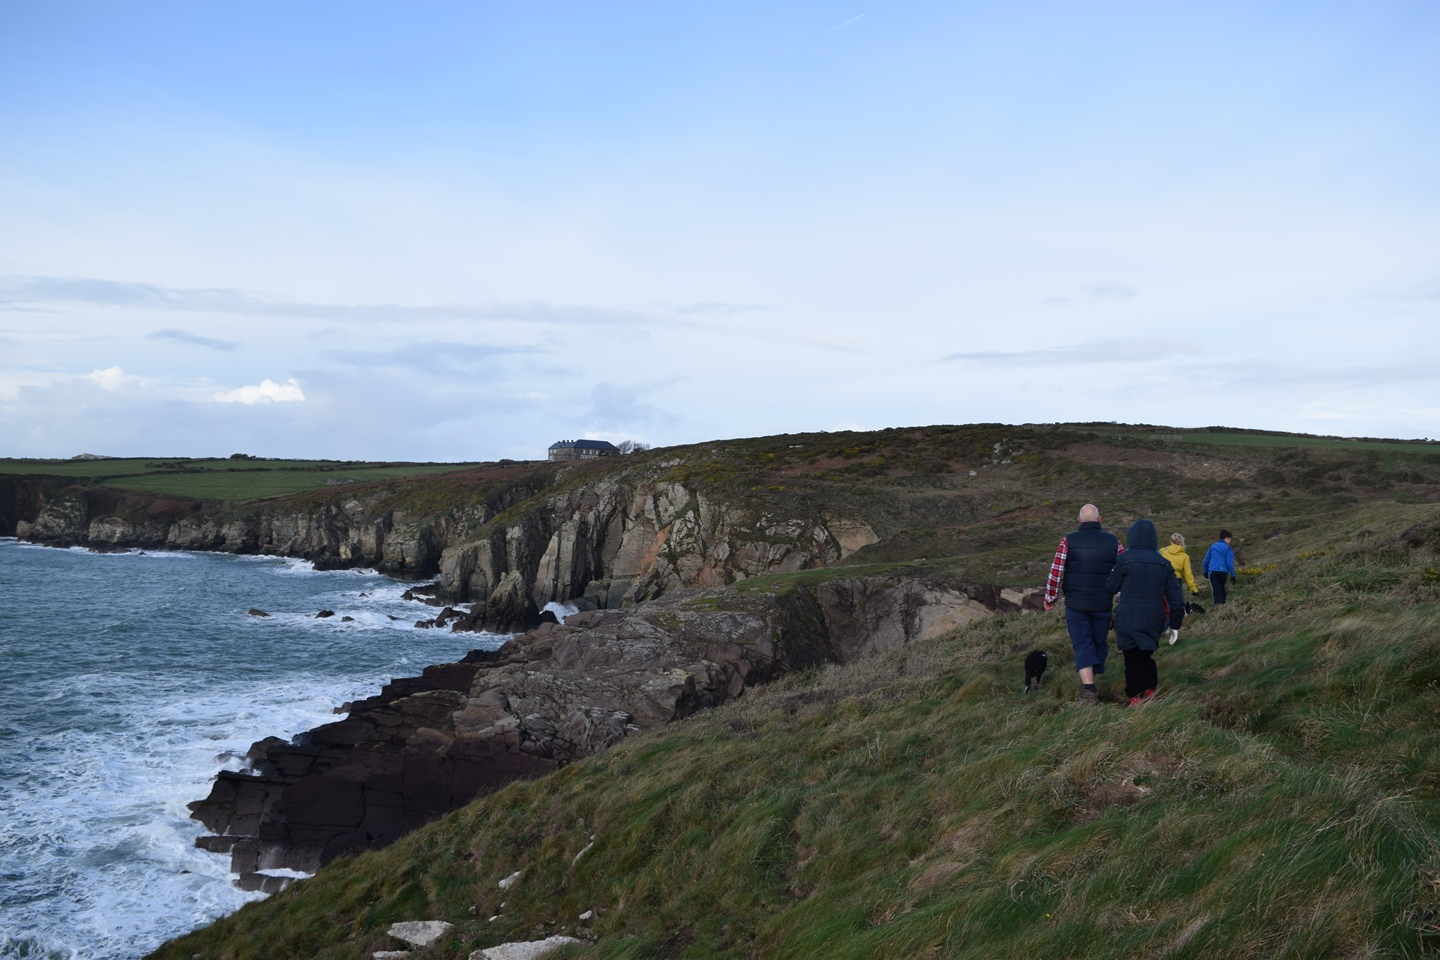 Hike the Pembrokeshire Coast